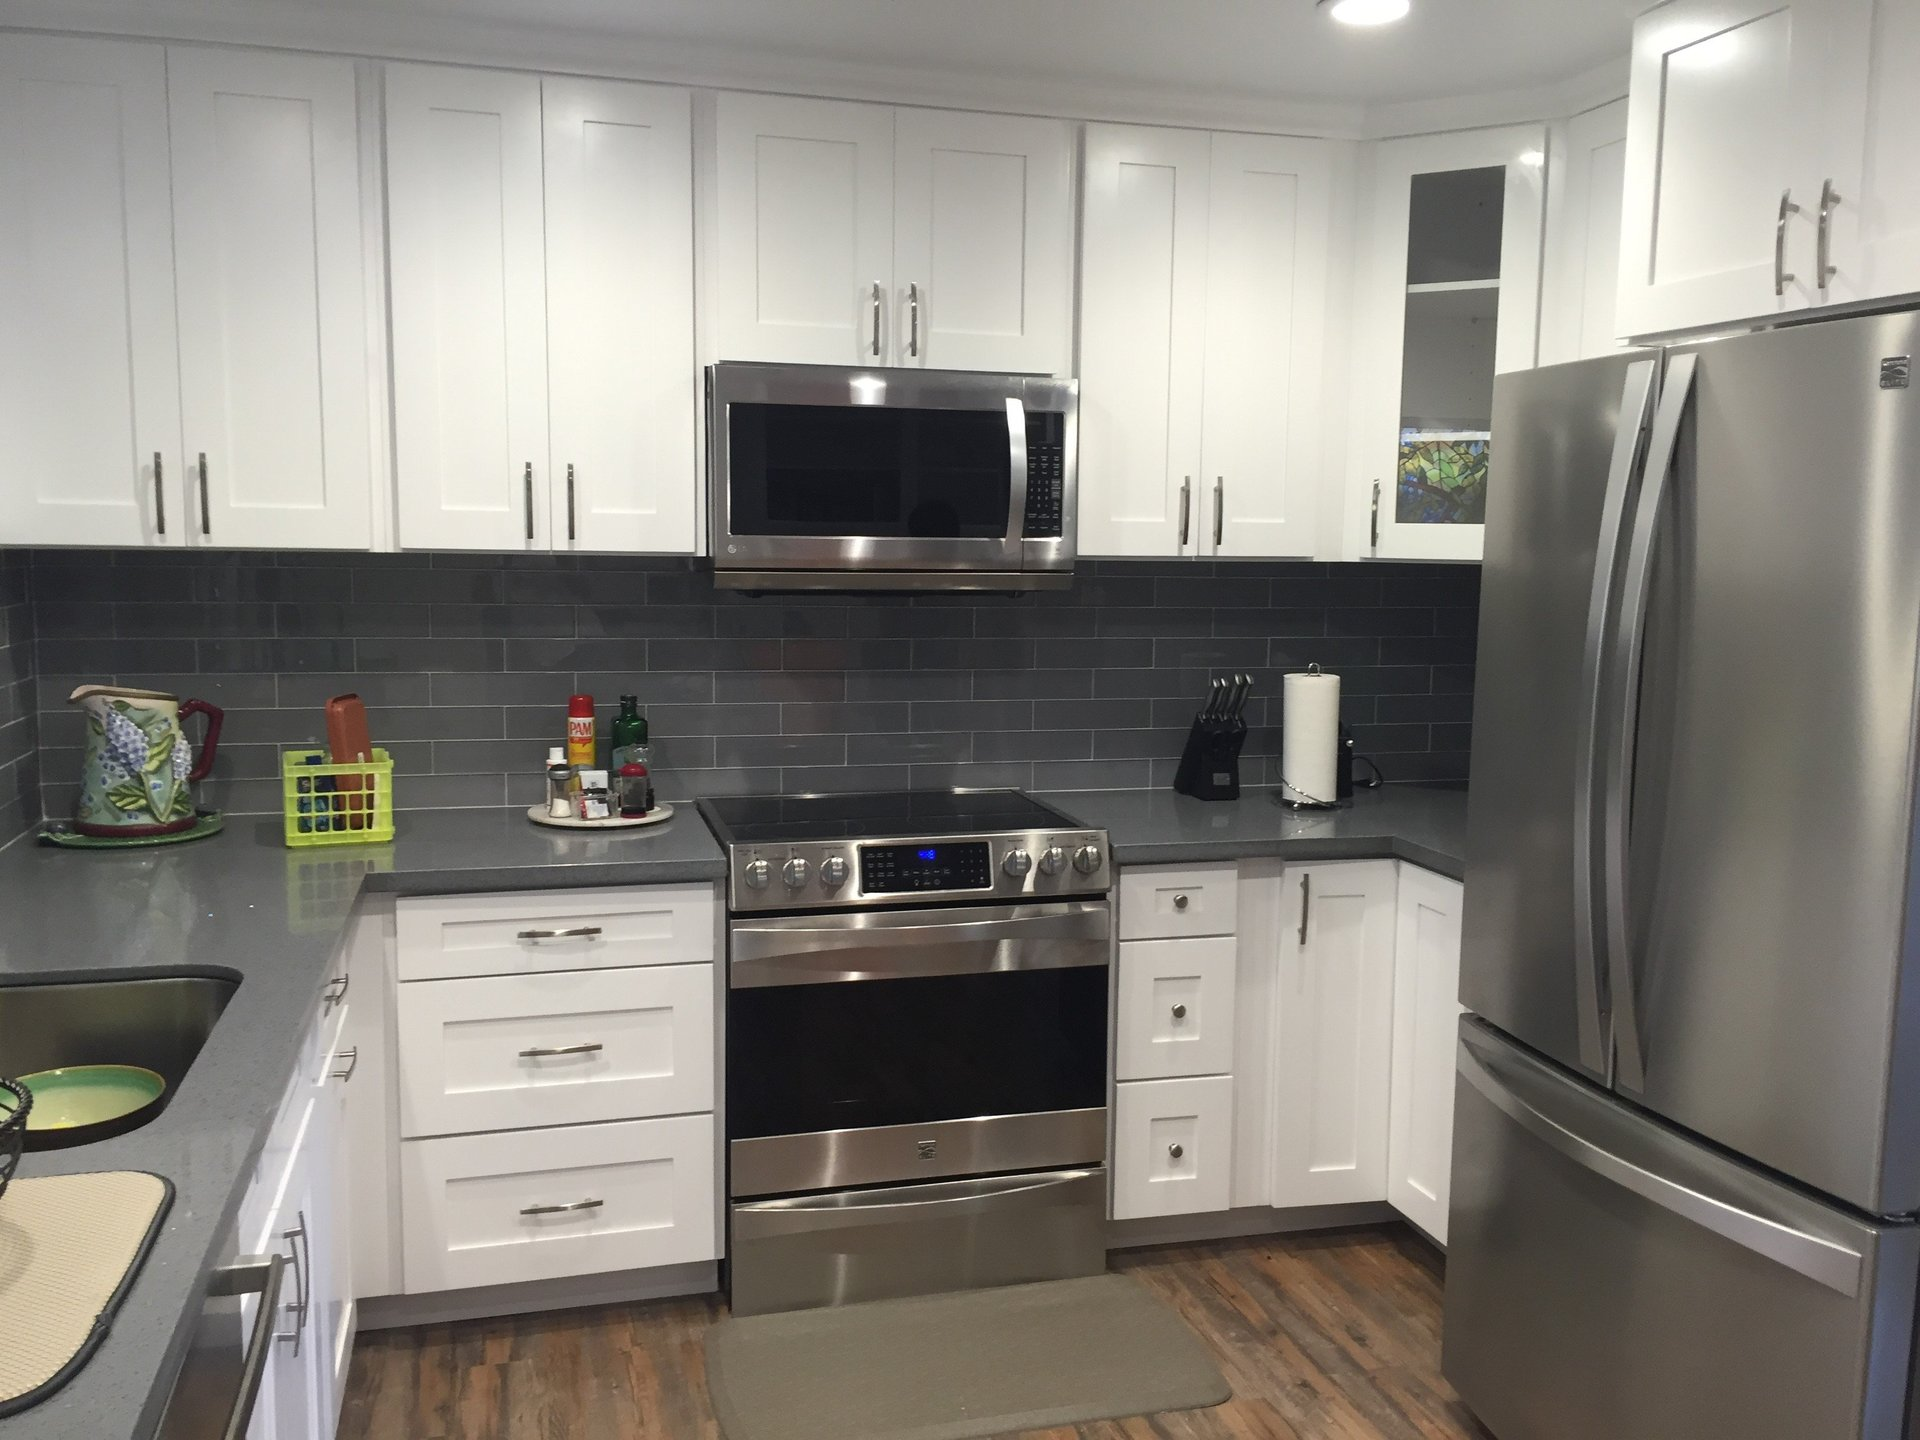 The Best Approach Is Often A Minimalist One. If You Prefer Something Sleek  And Clean, Opt For Plain Faced Cabinets. You Can Then Add A Contrasting ...